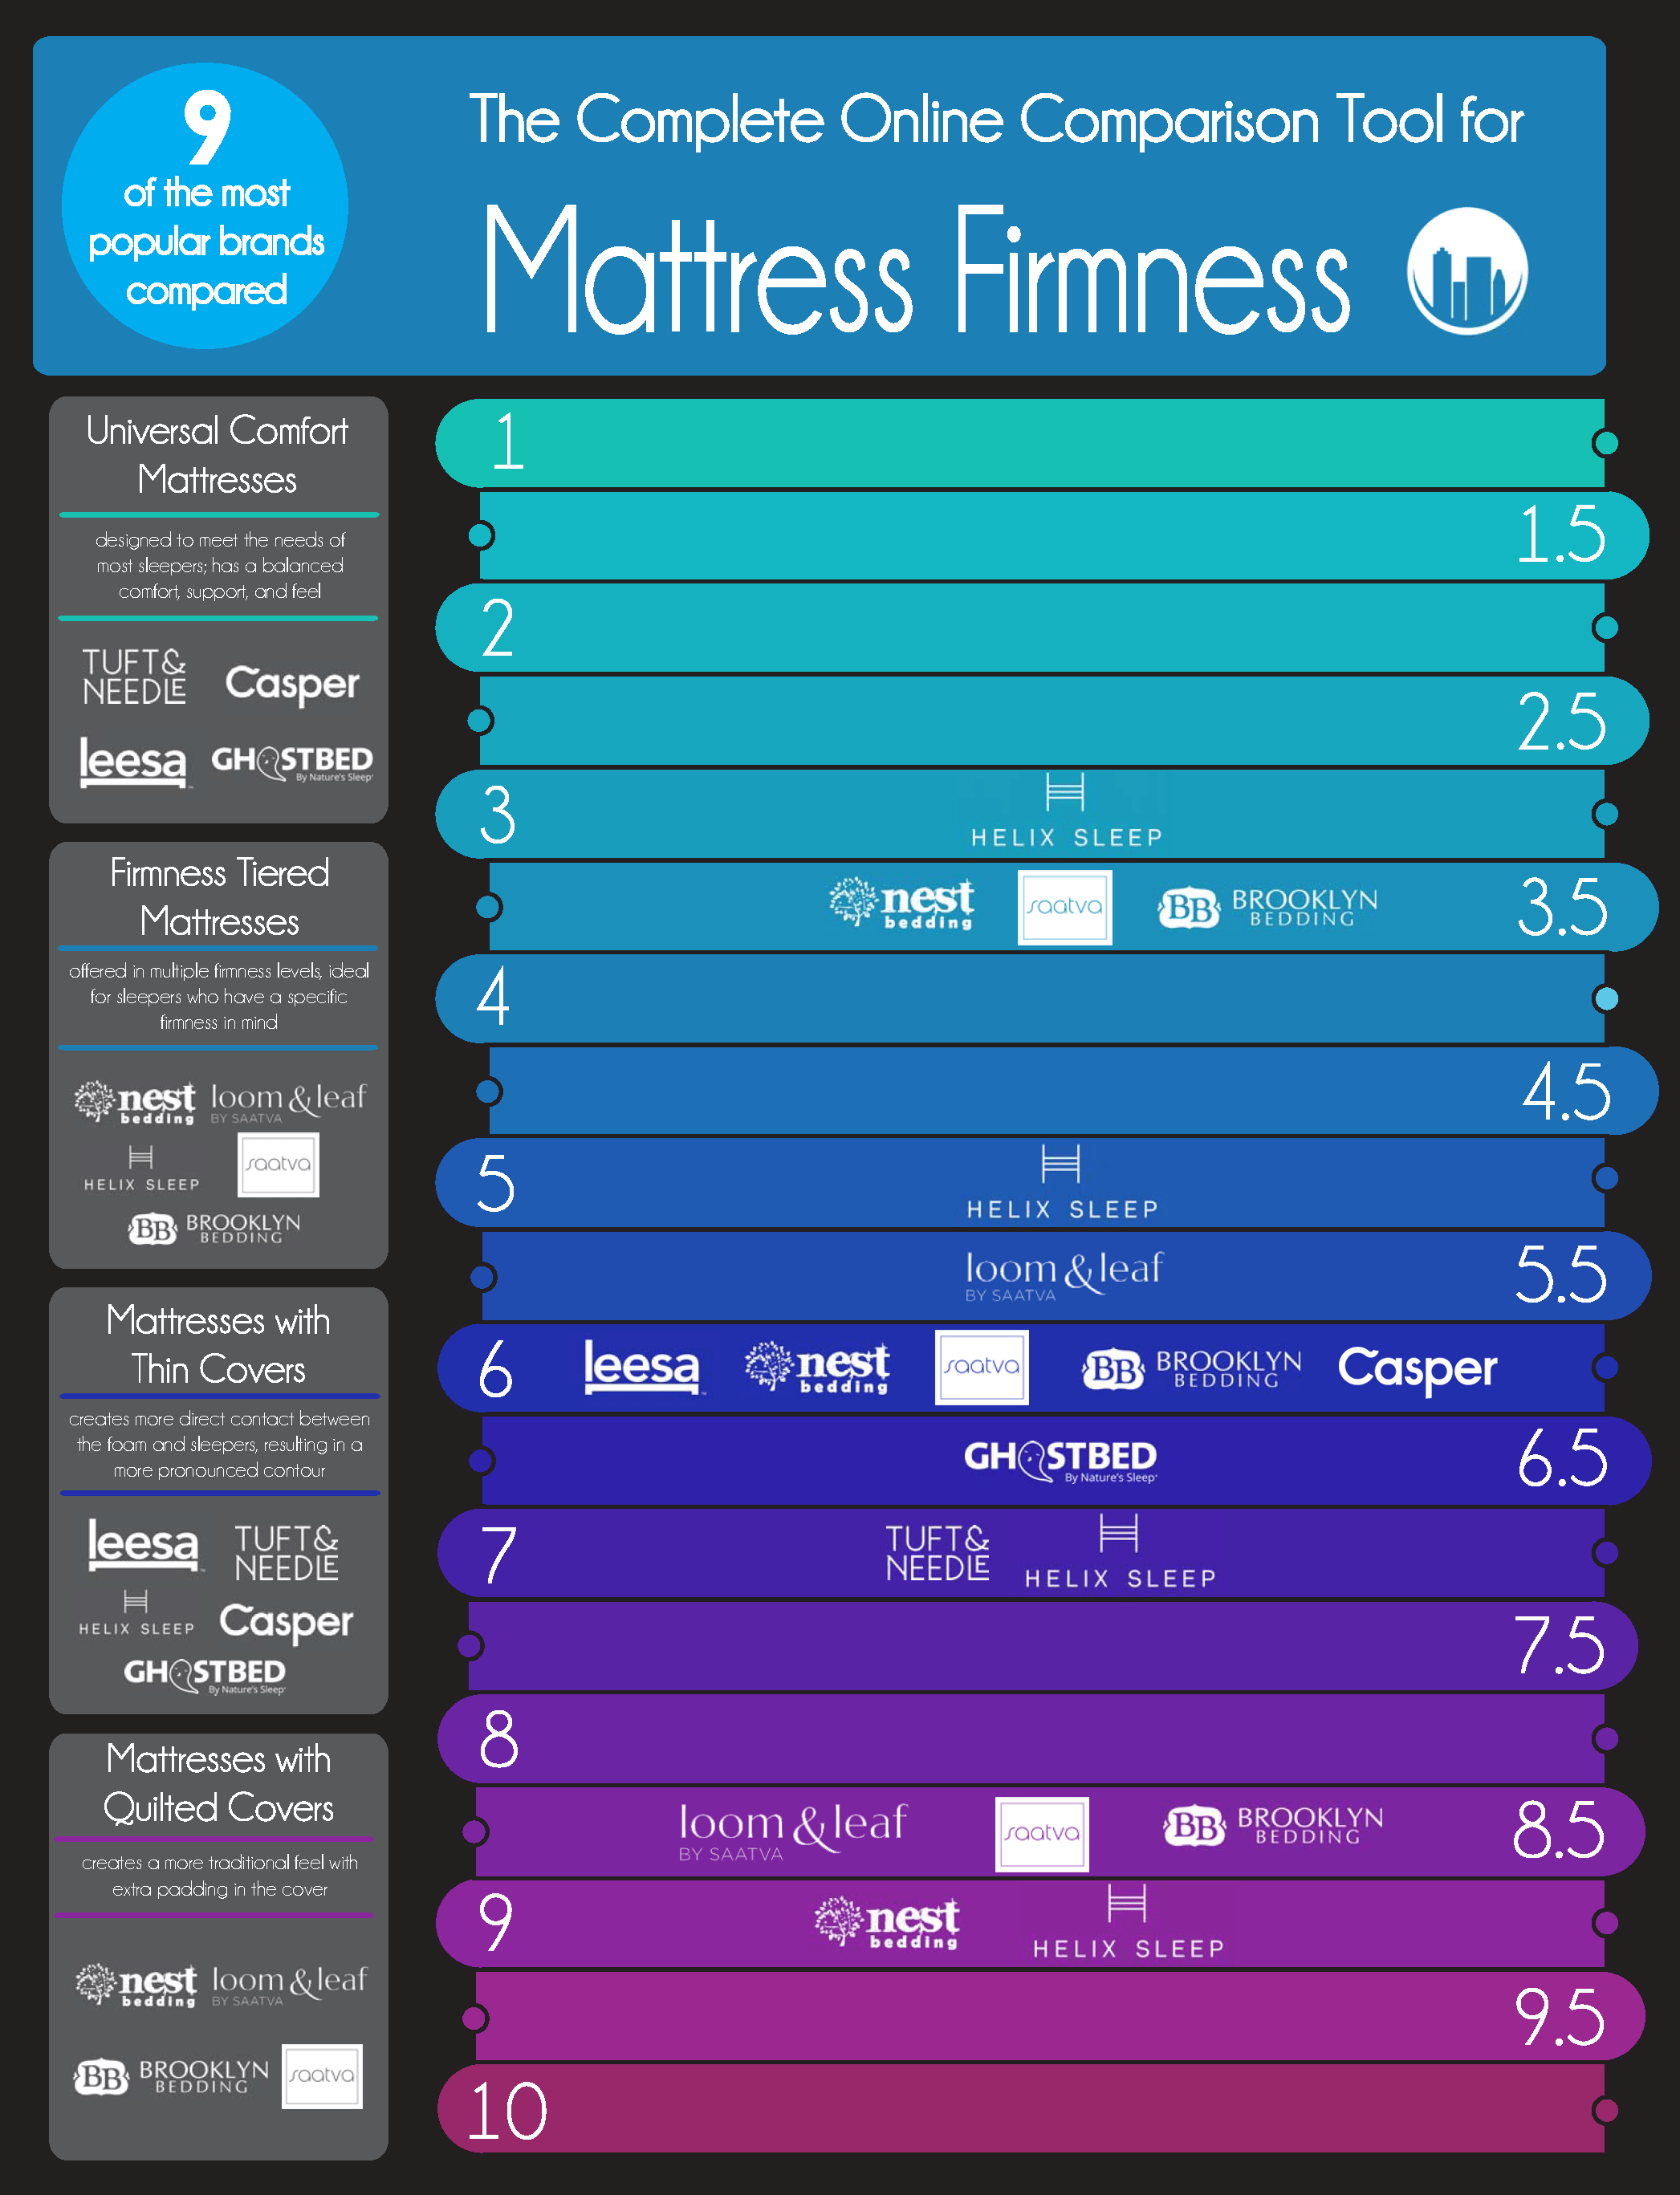 Saatva Mattress Bad Reviews >> 9 Online Mattress Firmnesses Compared [Infographic] | Sleepopolis